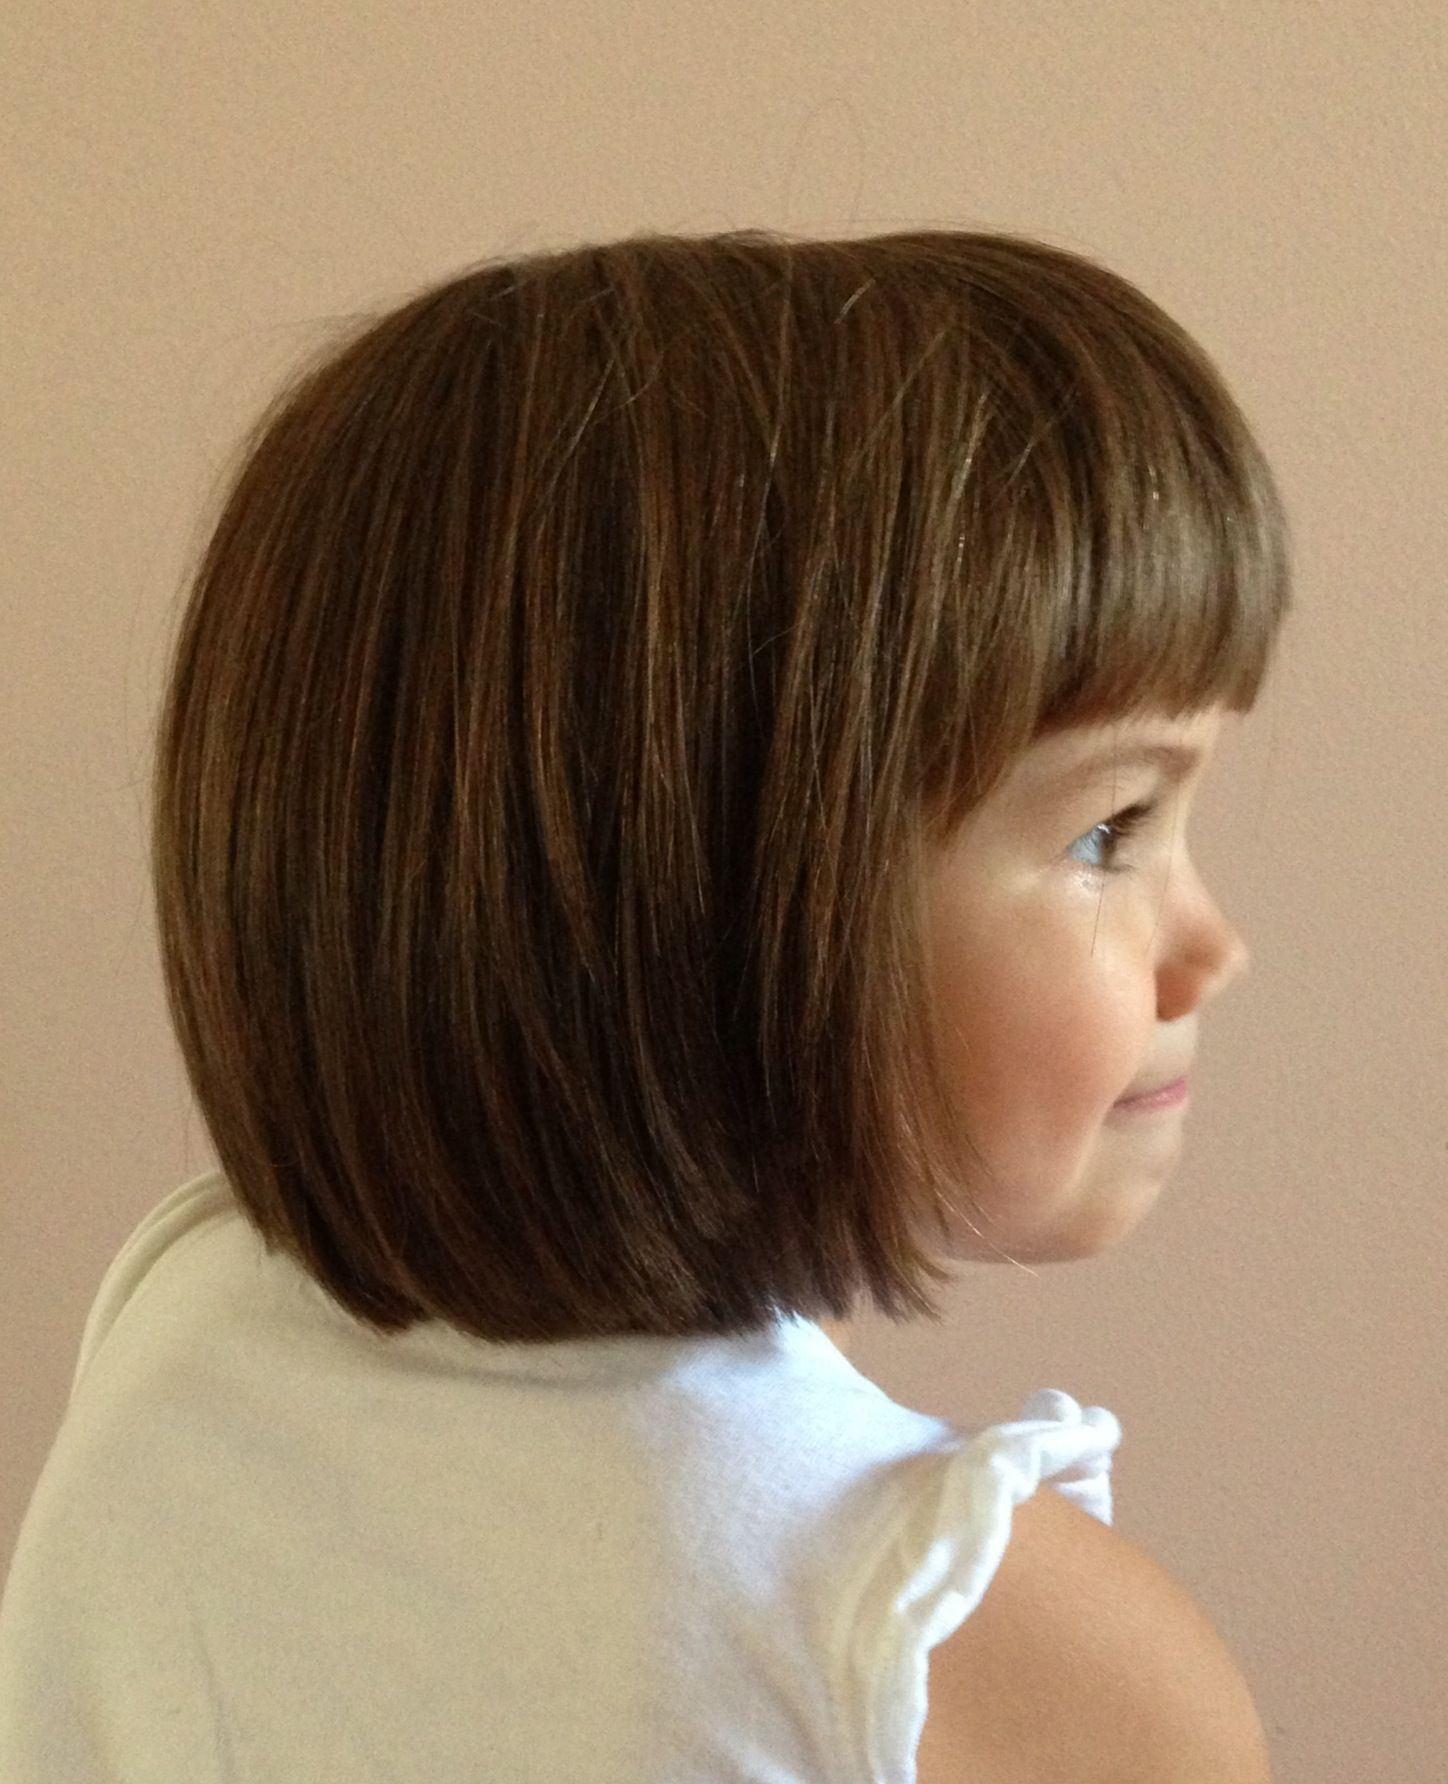 Cute Short Bob Haircut With Blunt Bangs On This Little Girl Little Girl Bob Haircut Bob Haircut For Girls Little Girl Haircuts